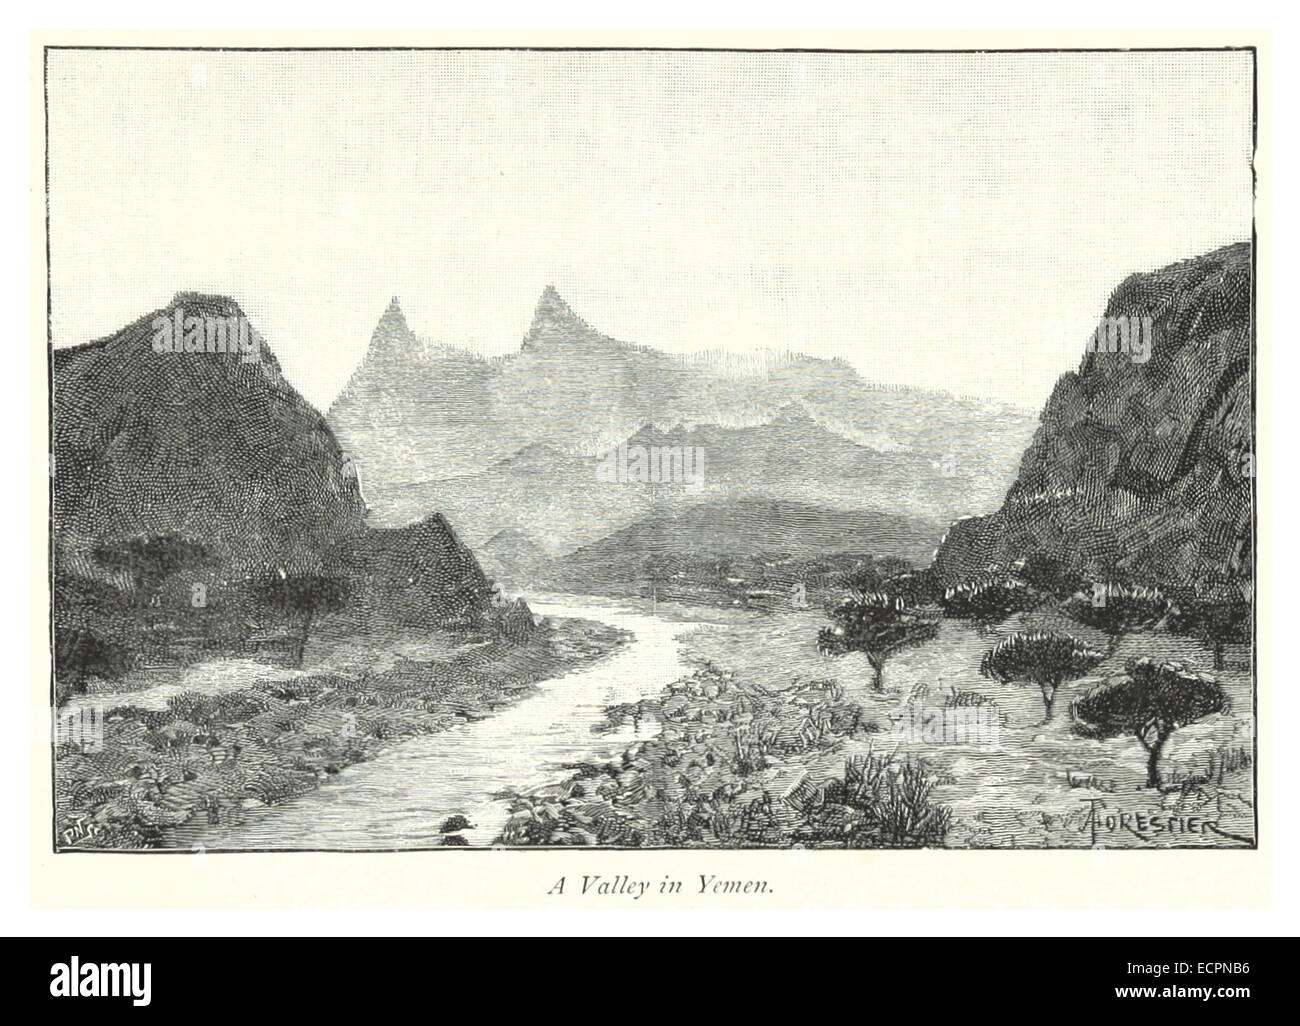 231 A valley in Yemen - Stock Image